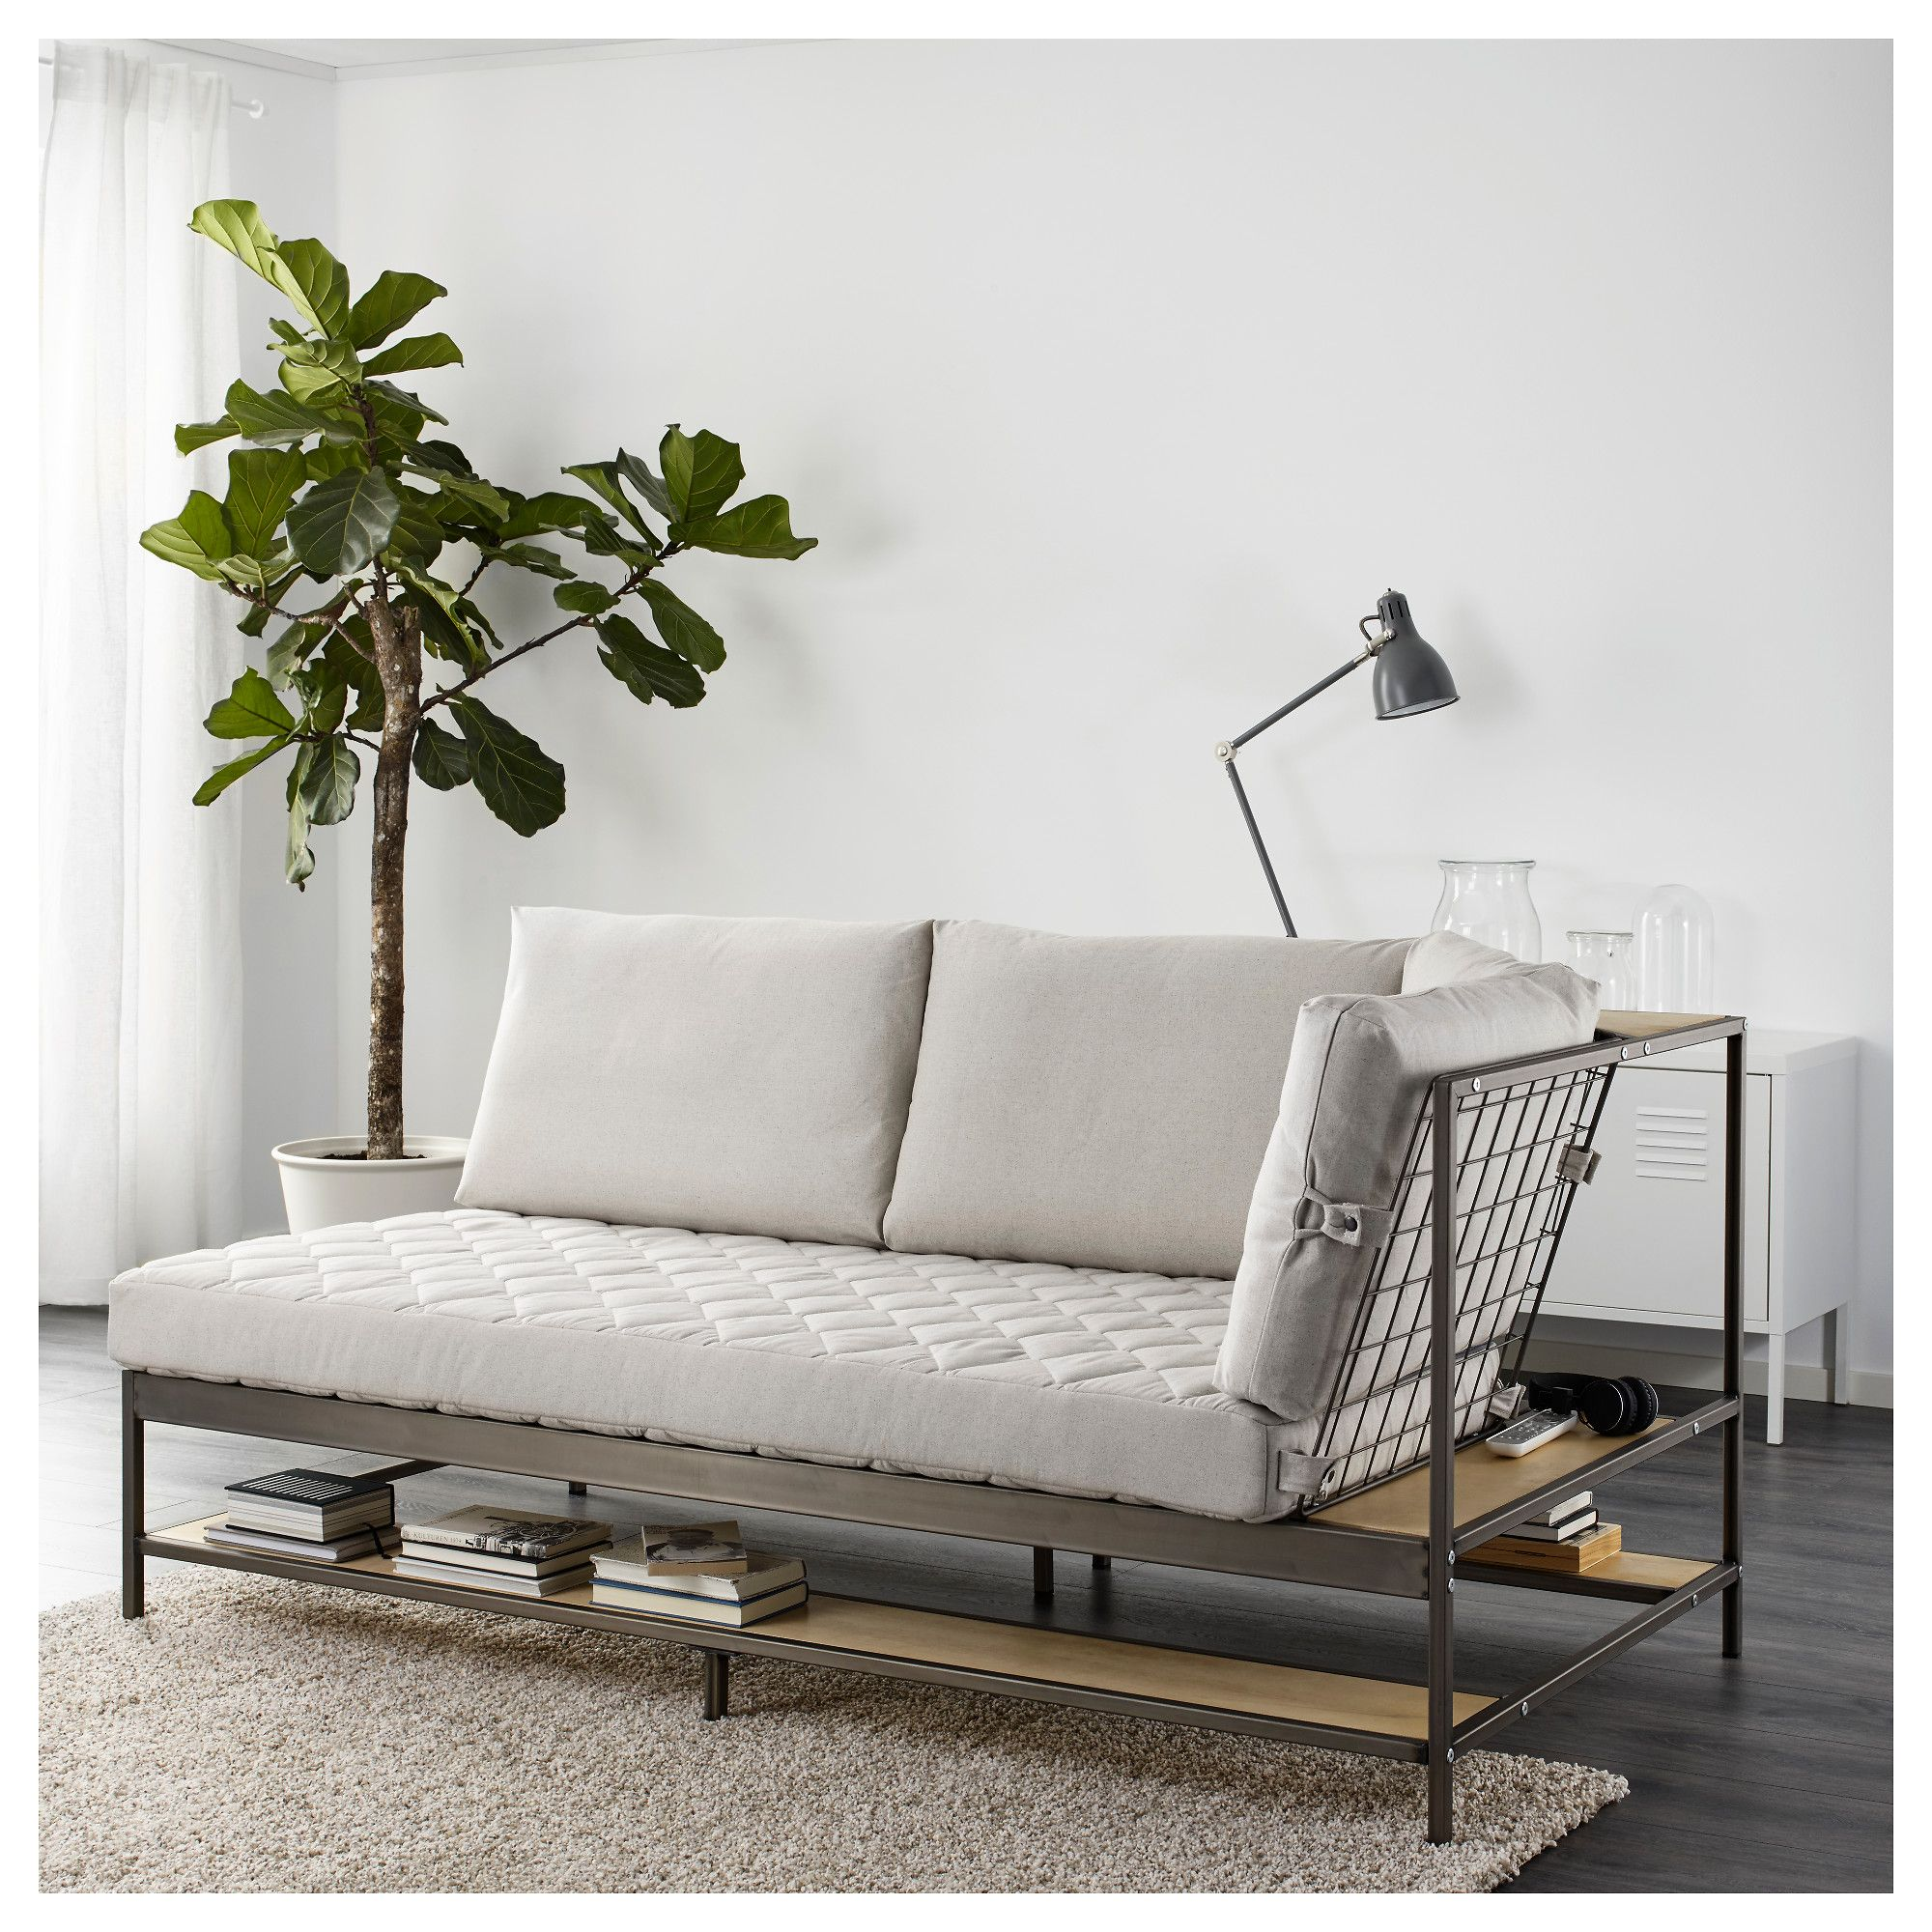 EKEBOL Sofa Katorp natural